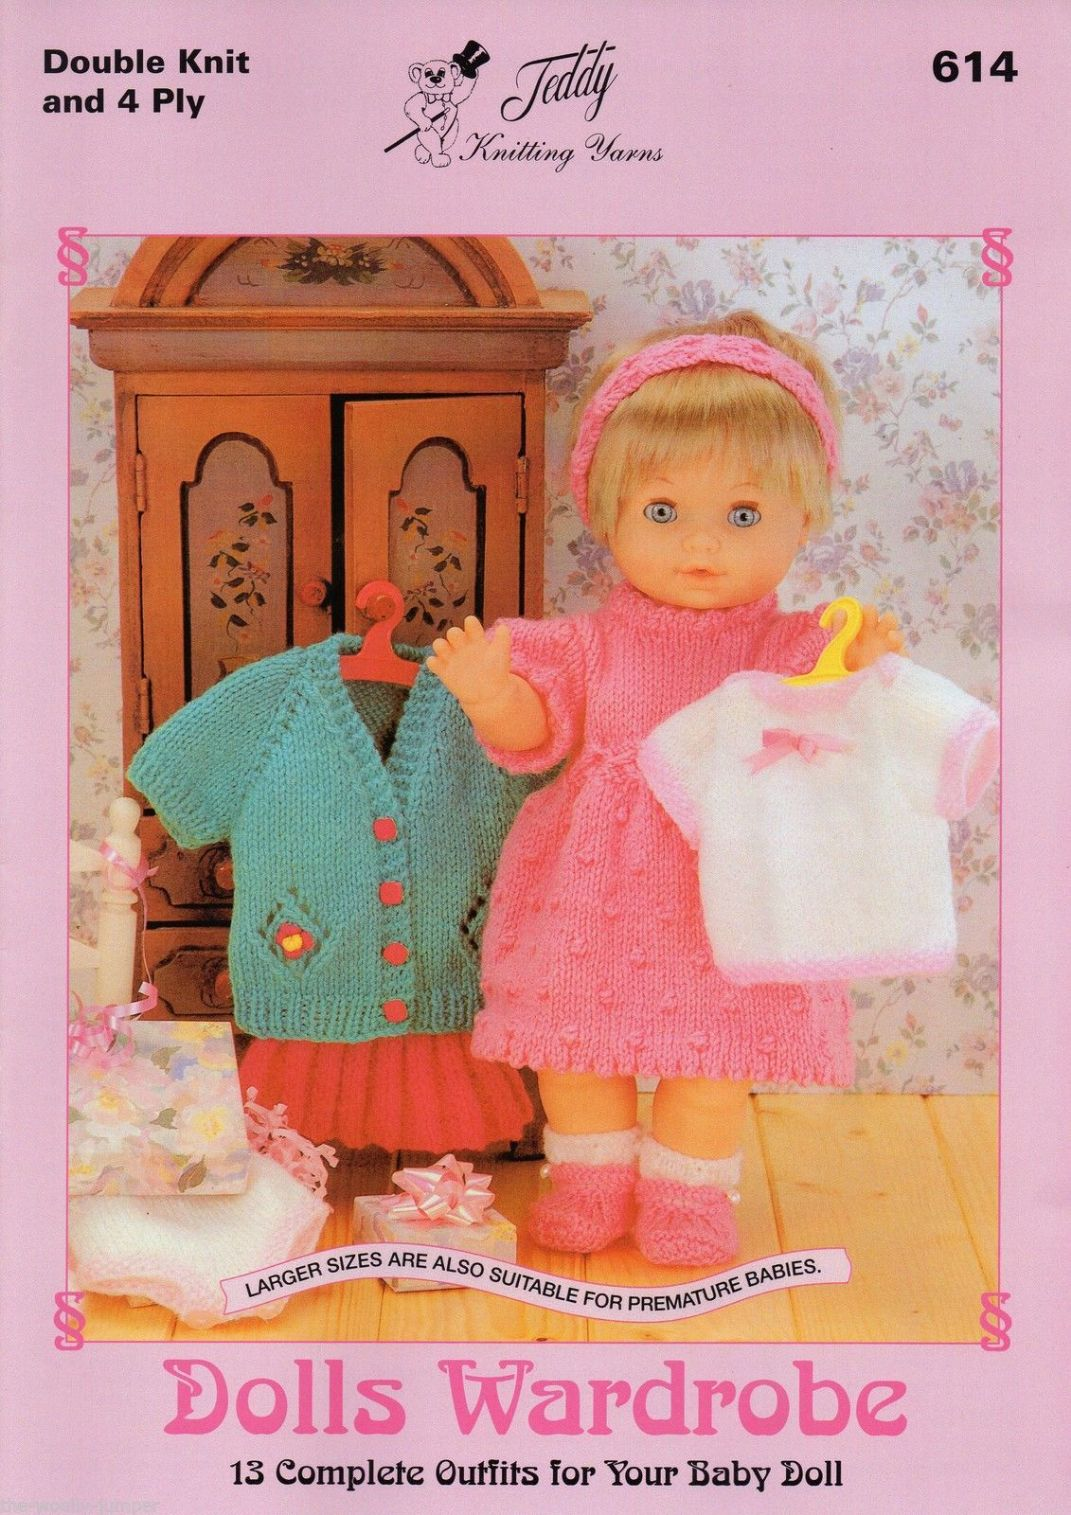 614 - DOLLS WARDROBE - 13 OUTFITS DK & 4 PLY KNITTING PATTERN BOOKLET